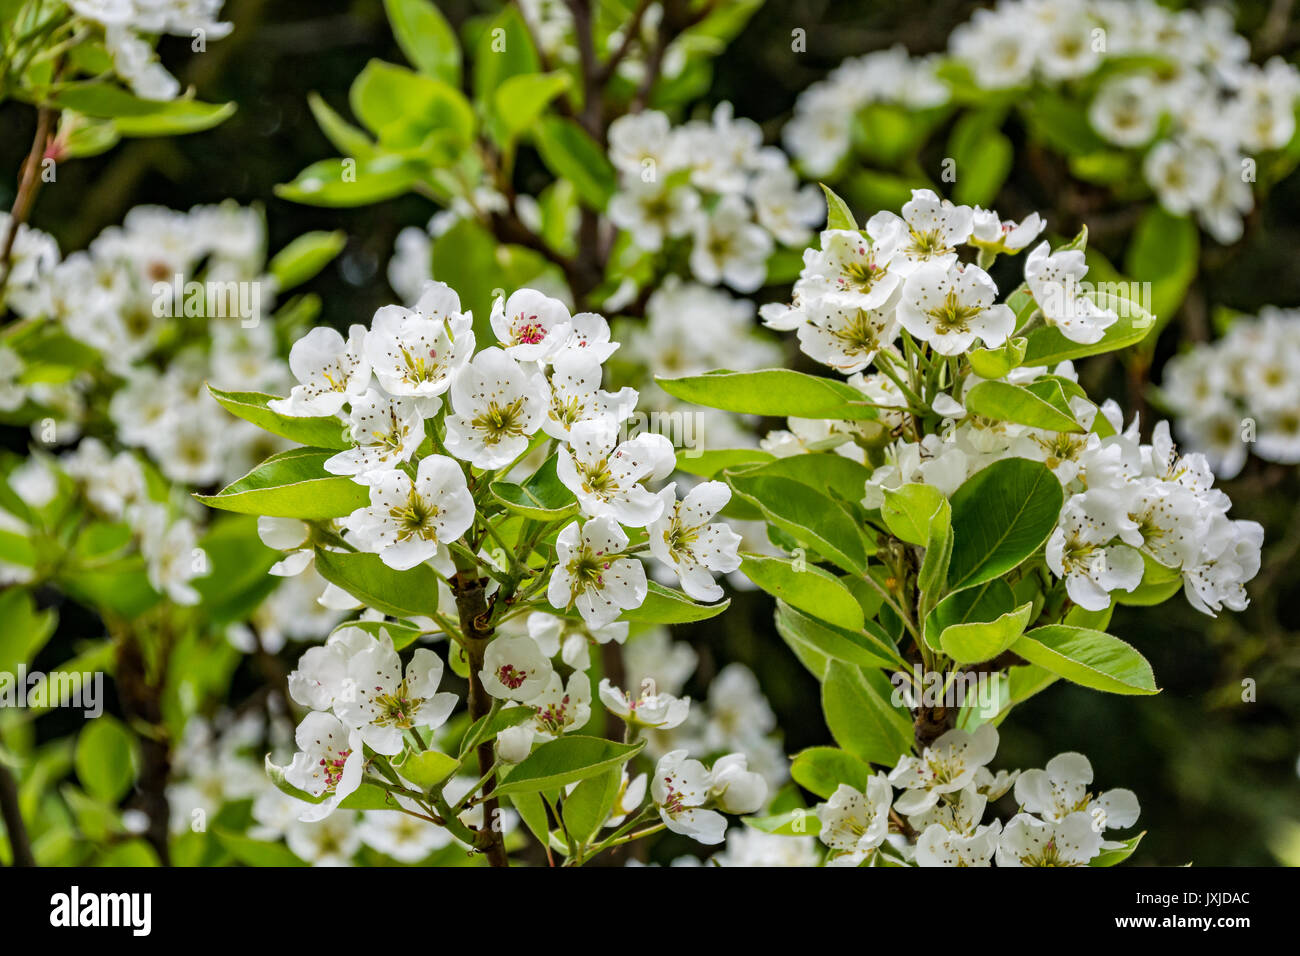 Spring pear flowers on a tree - Stock Image